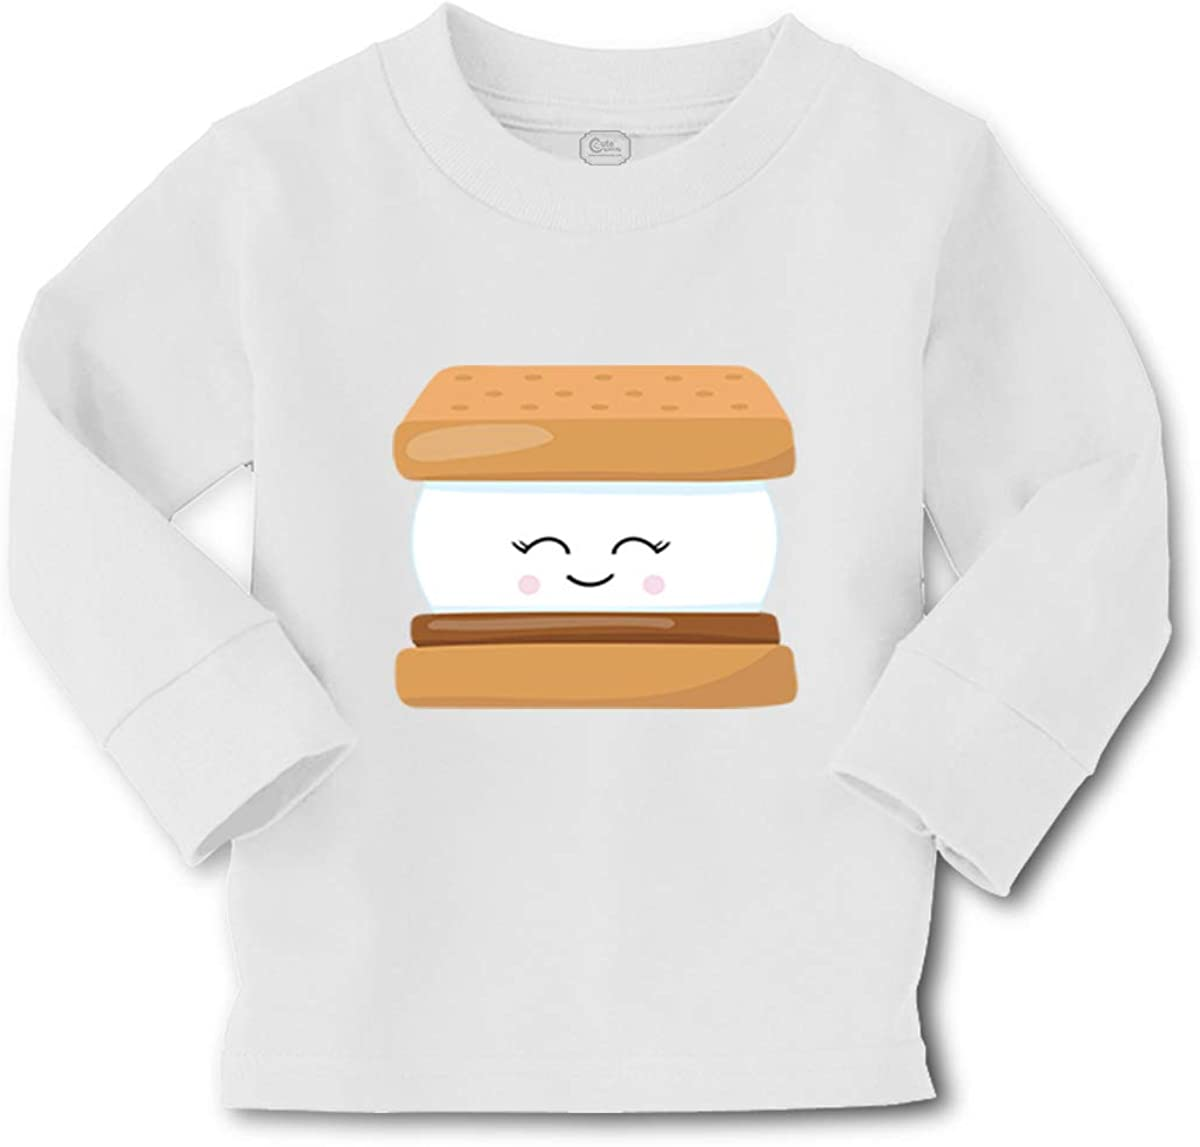 Cute Rascals Kids Long Sleeve T Shirt S'More Camping Cotton Boy & Girl Clothes